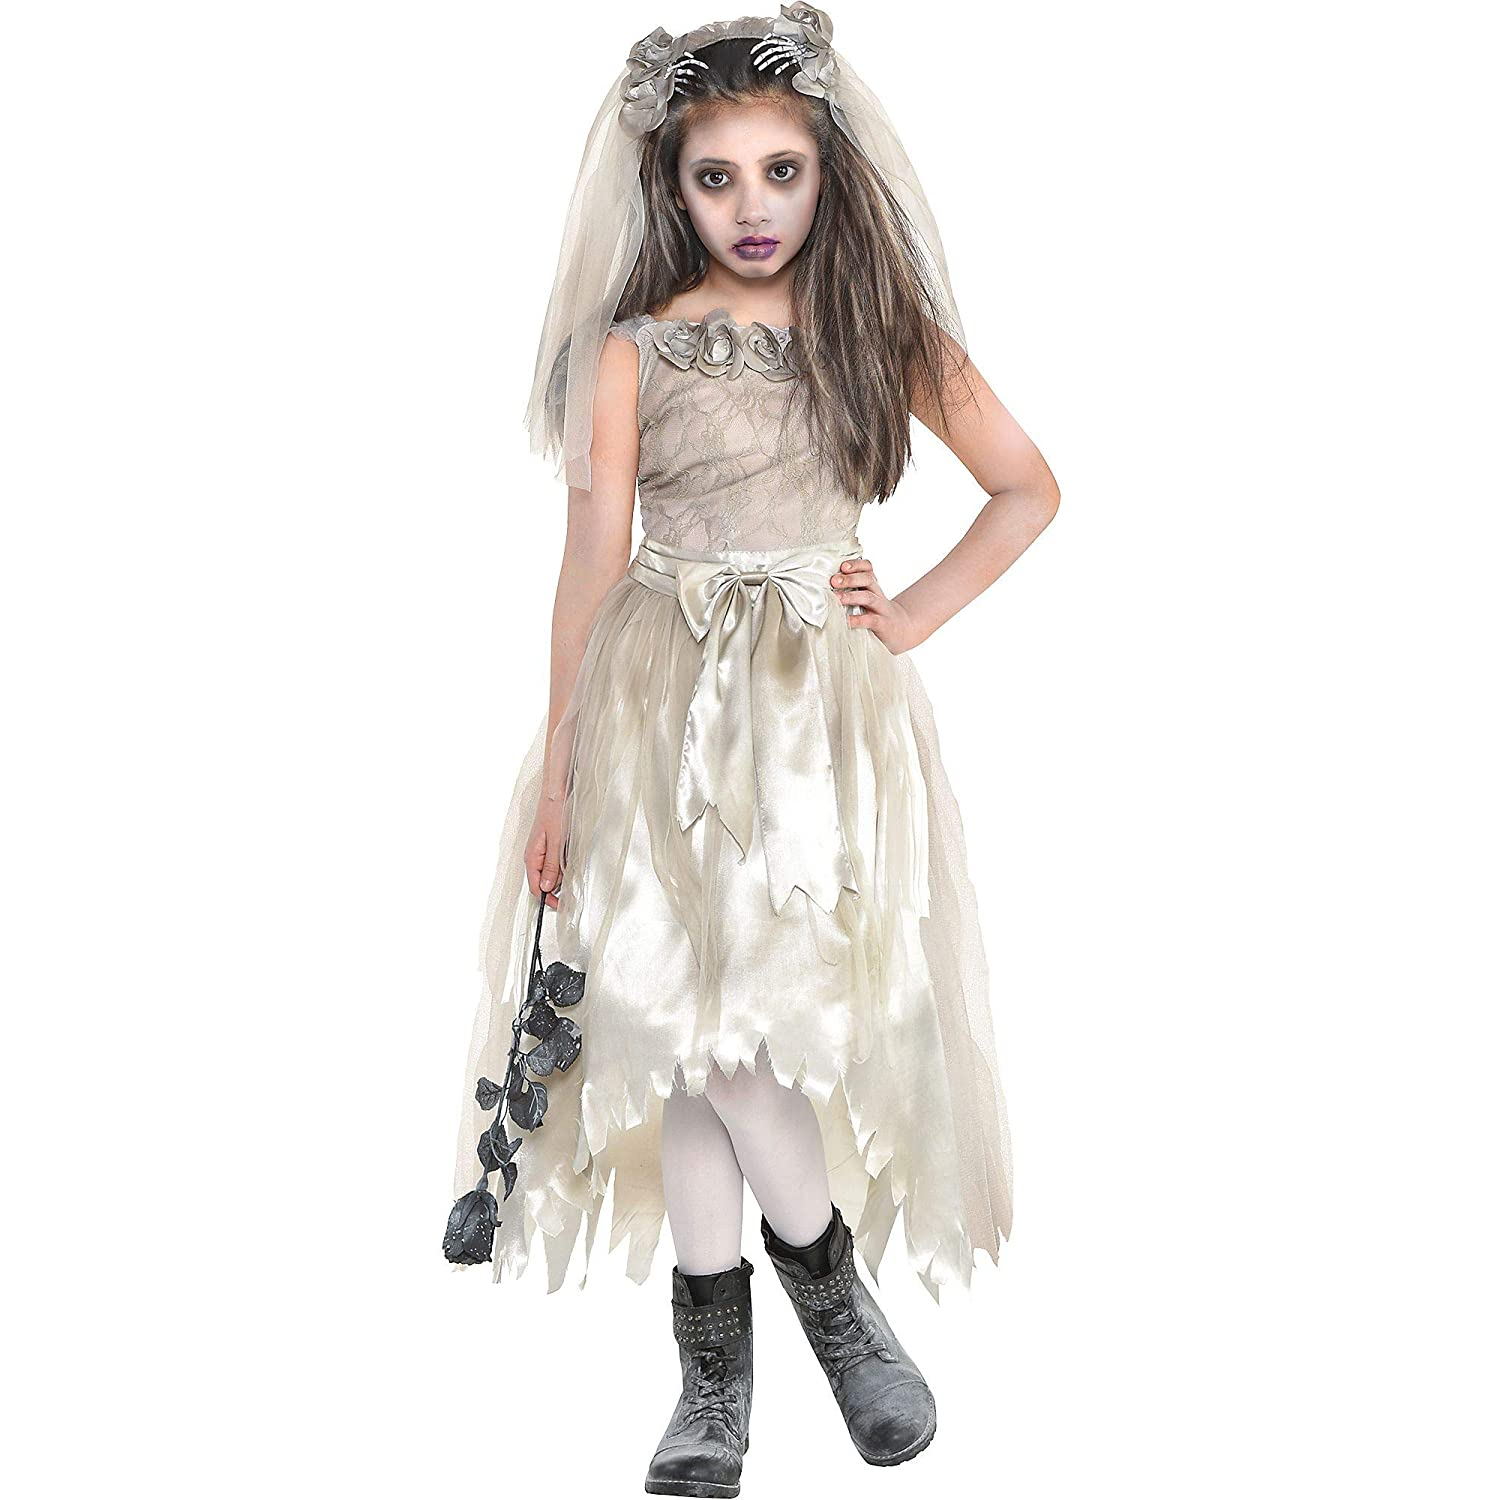 Zombie Bride Dress Halloween Costume for Girls, Large, with Included Accessories, by Amscan